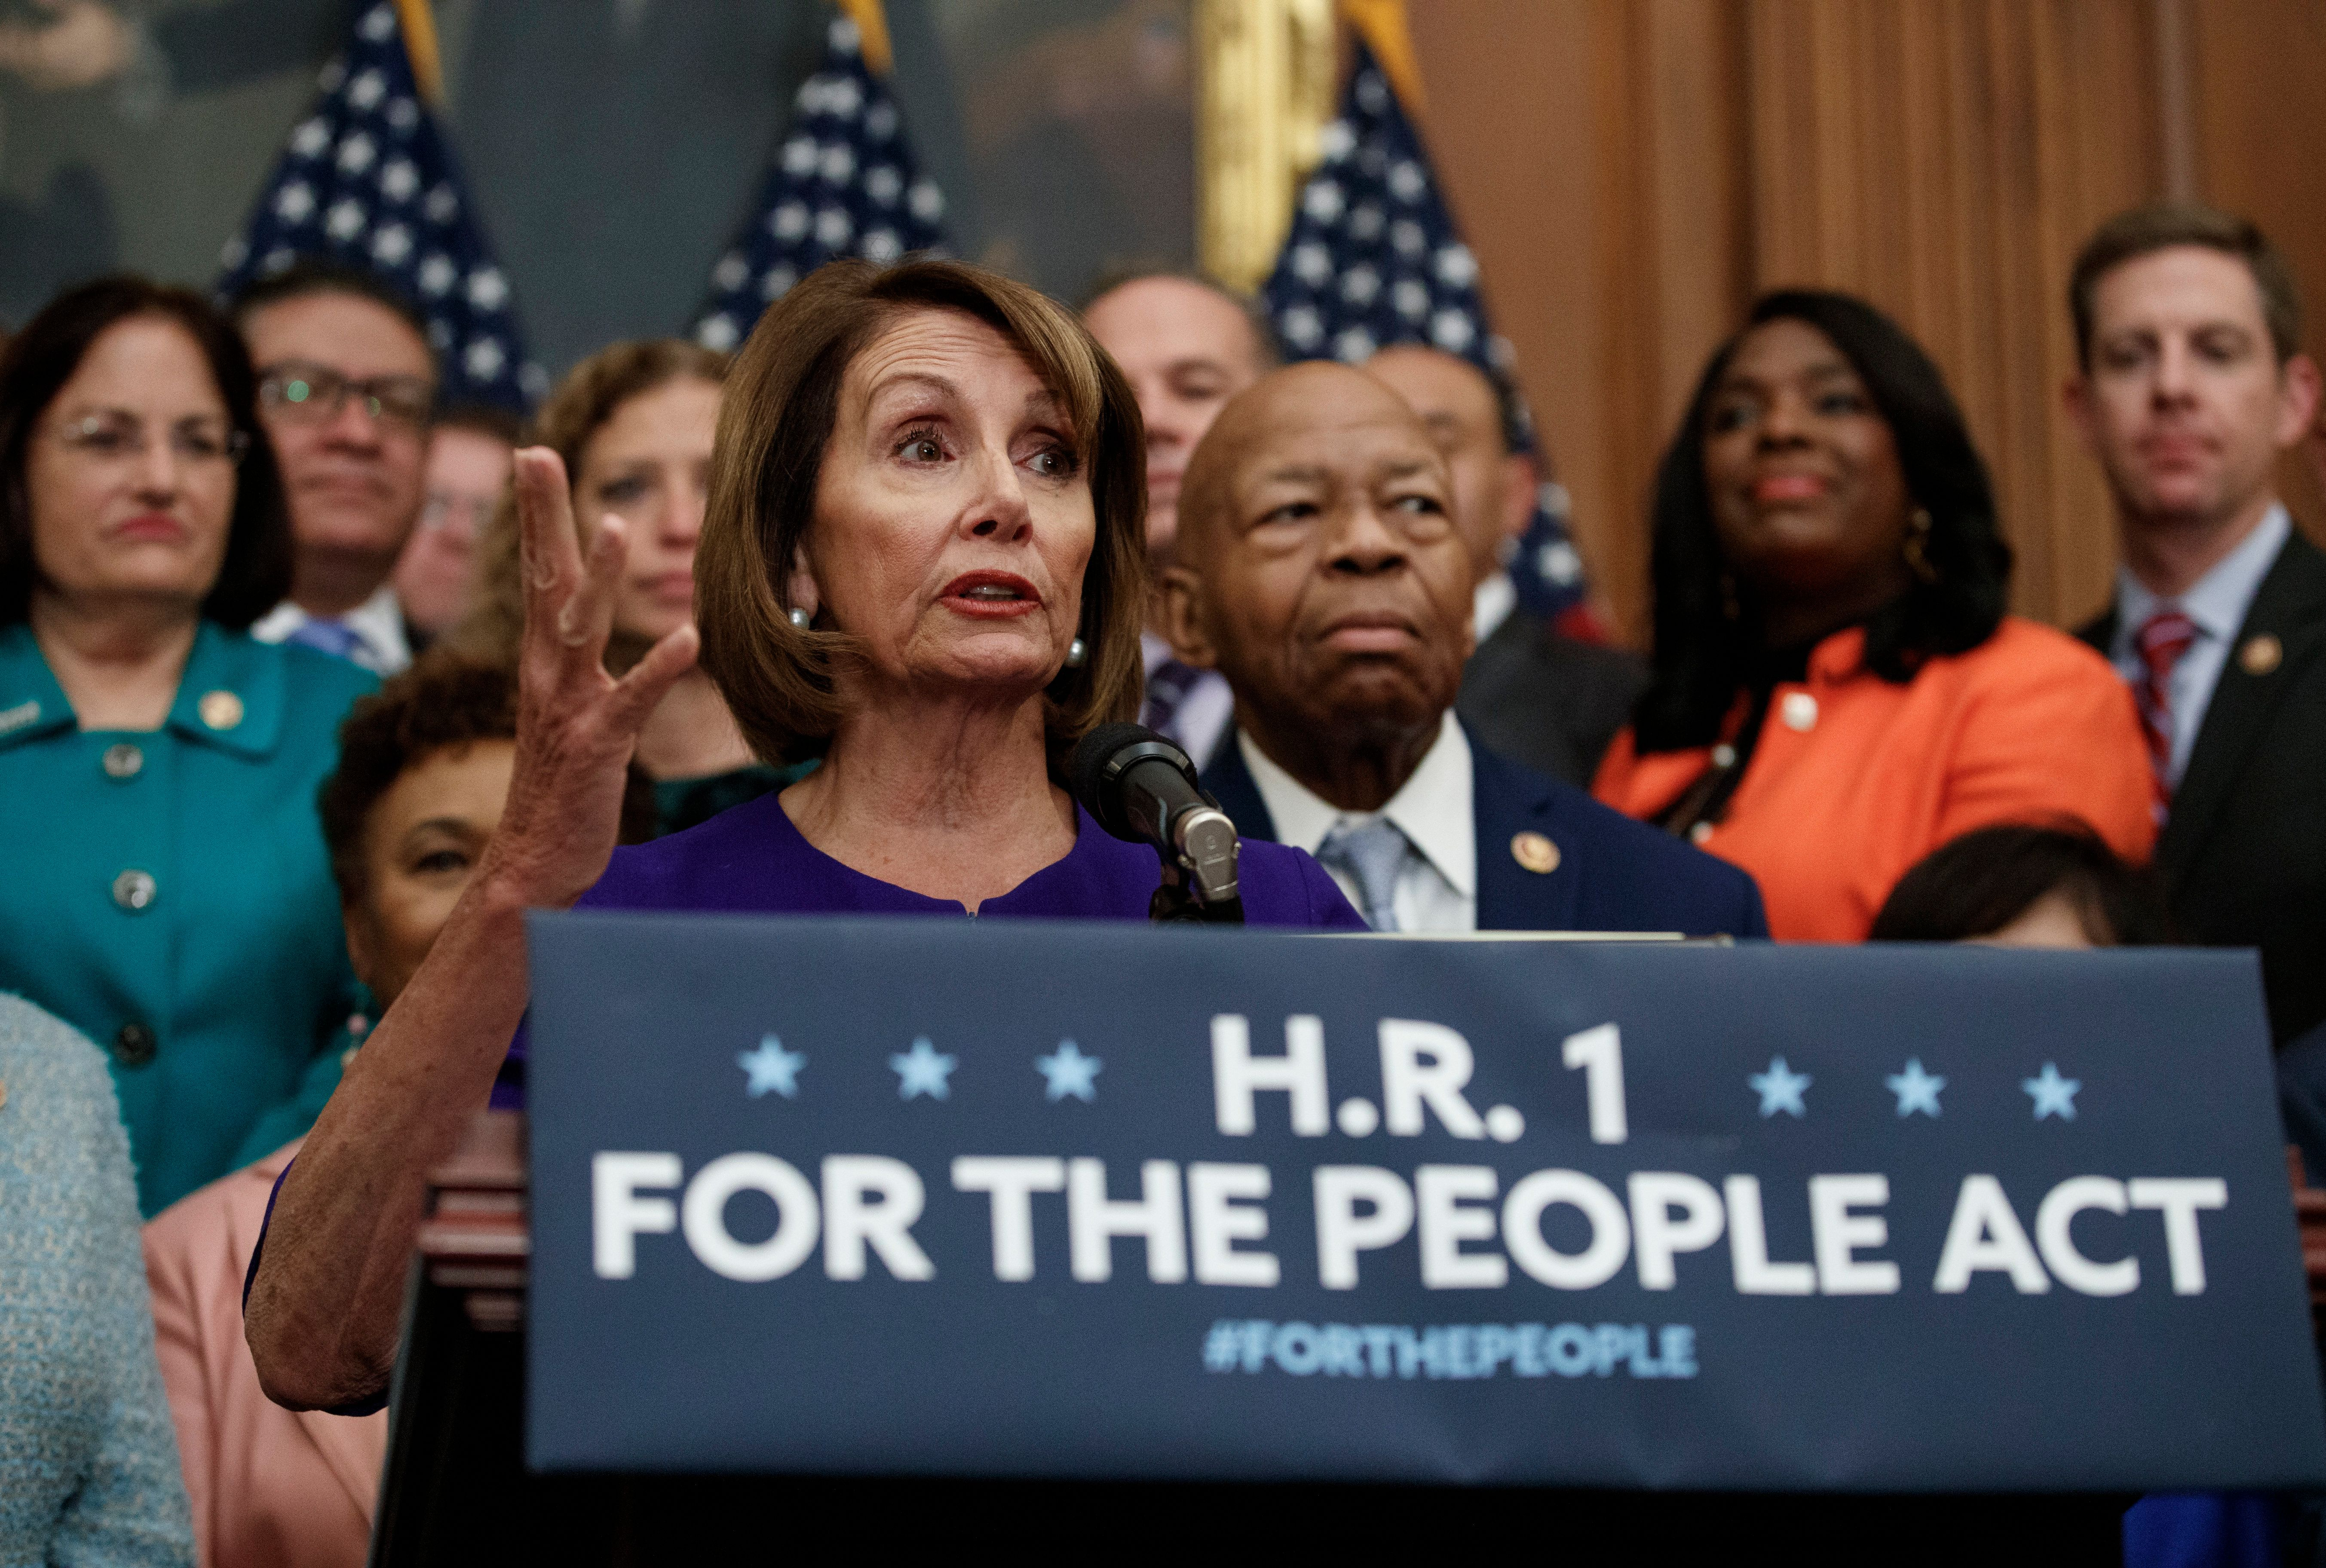 Speaker Nancy Pelosi (D-Calif.) and other Democrats introduced a sweeping proposal on voting rights, campaign finance and ethics reforms in the House on Jan. 4.